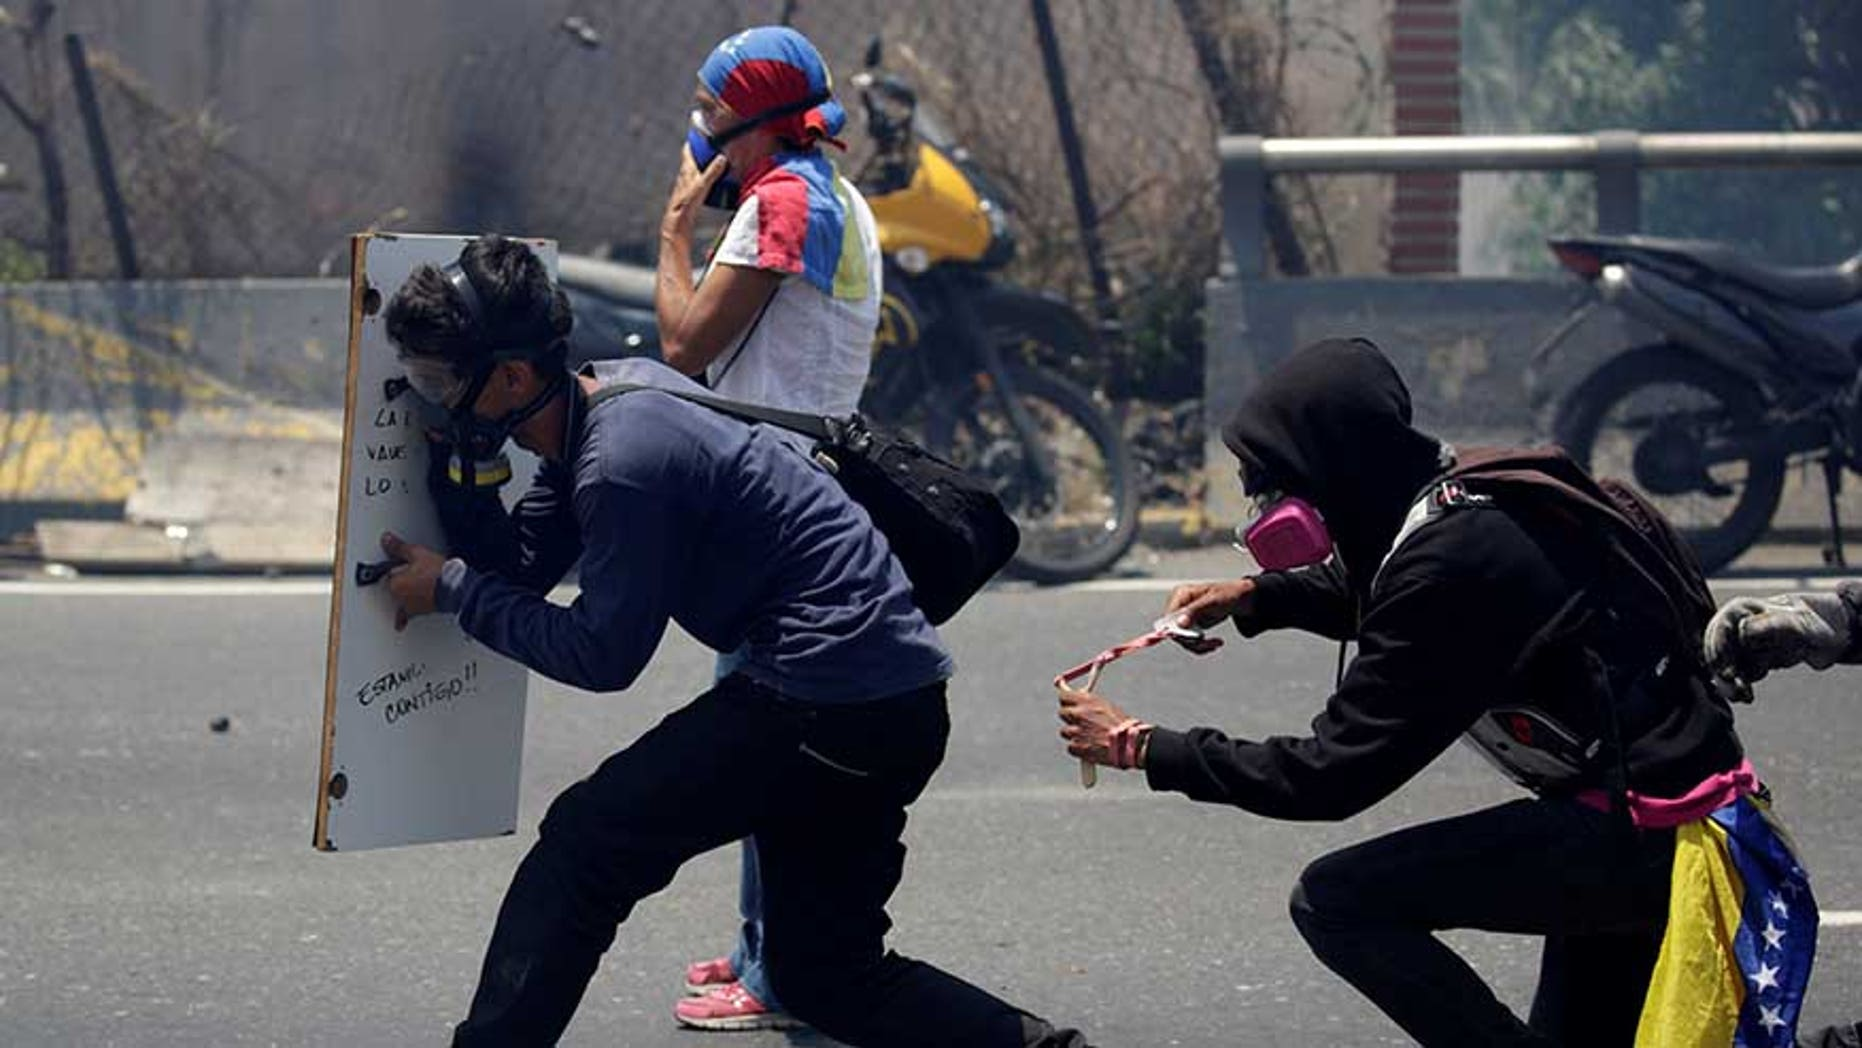 Opposition supporters clash with security forces during a rally in Caracas, Venezuela, April 26, 2017.